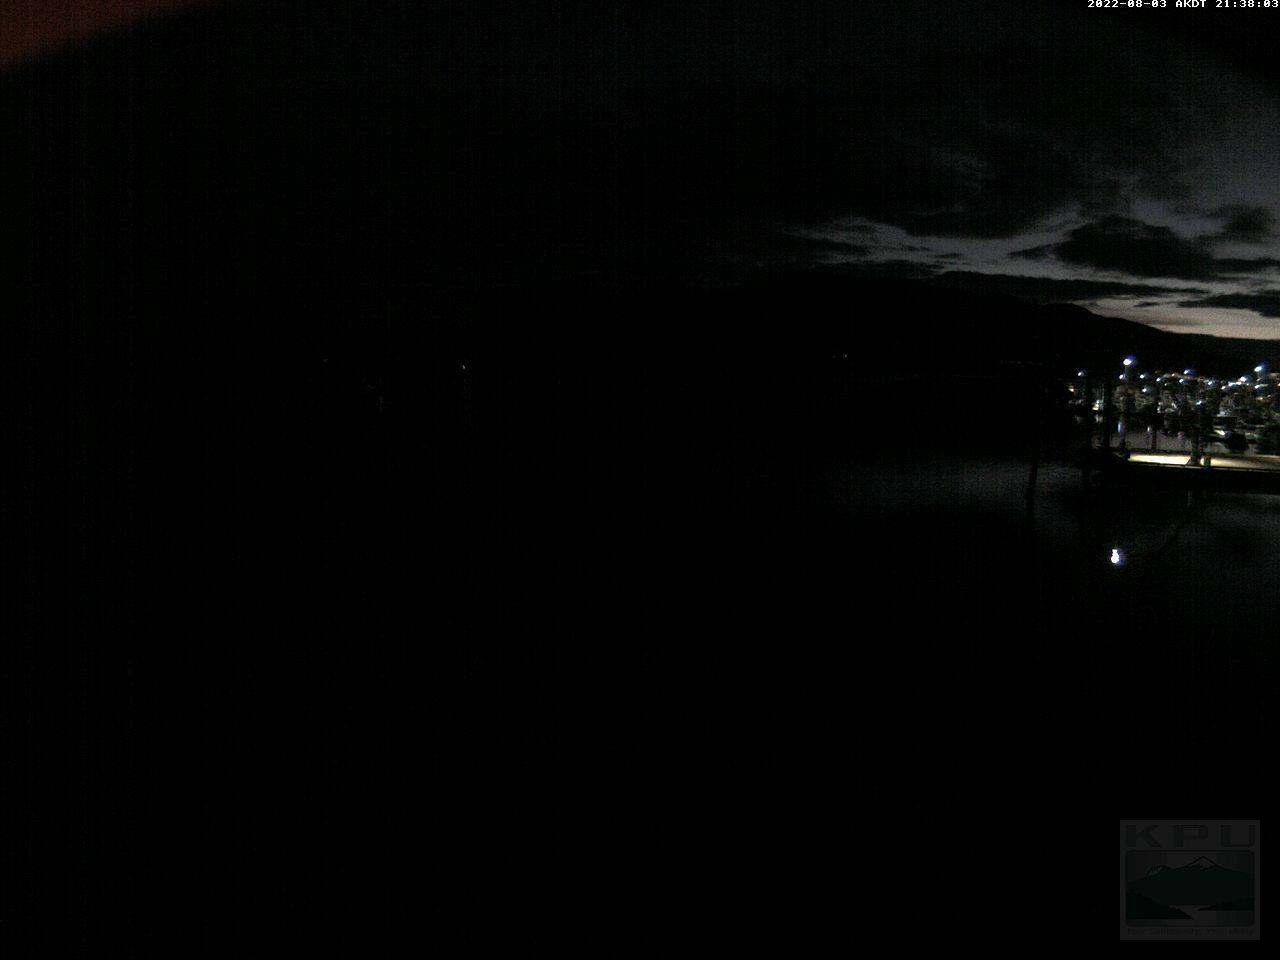 Current Ketchikan Webcam #4 Mega-View Image